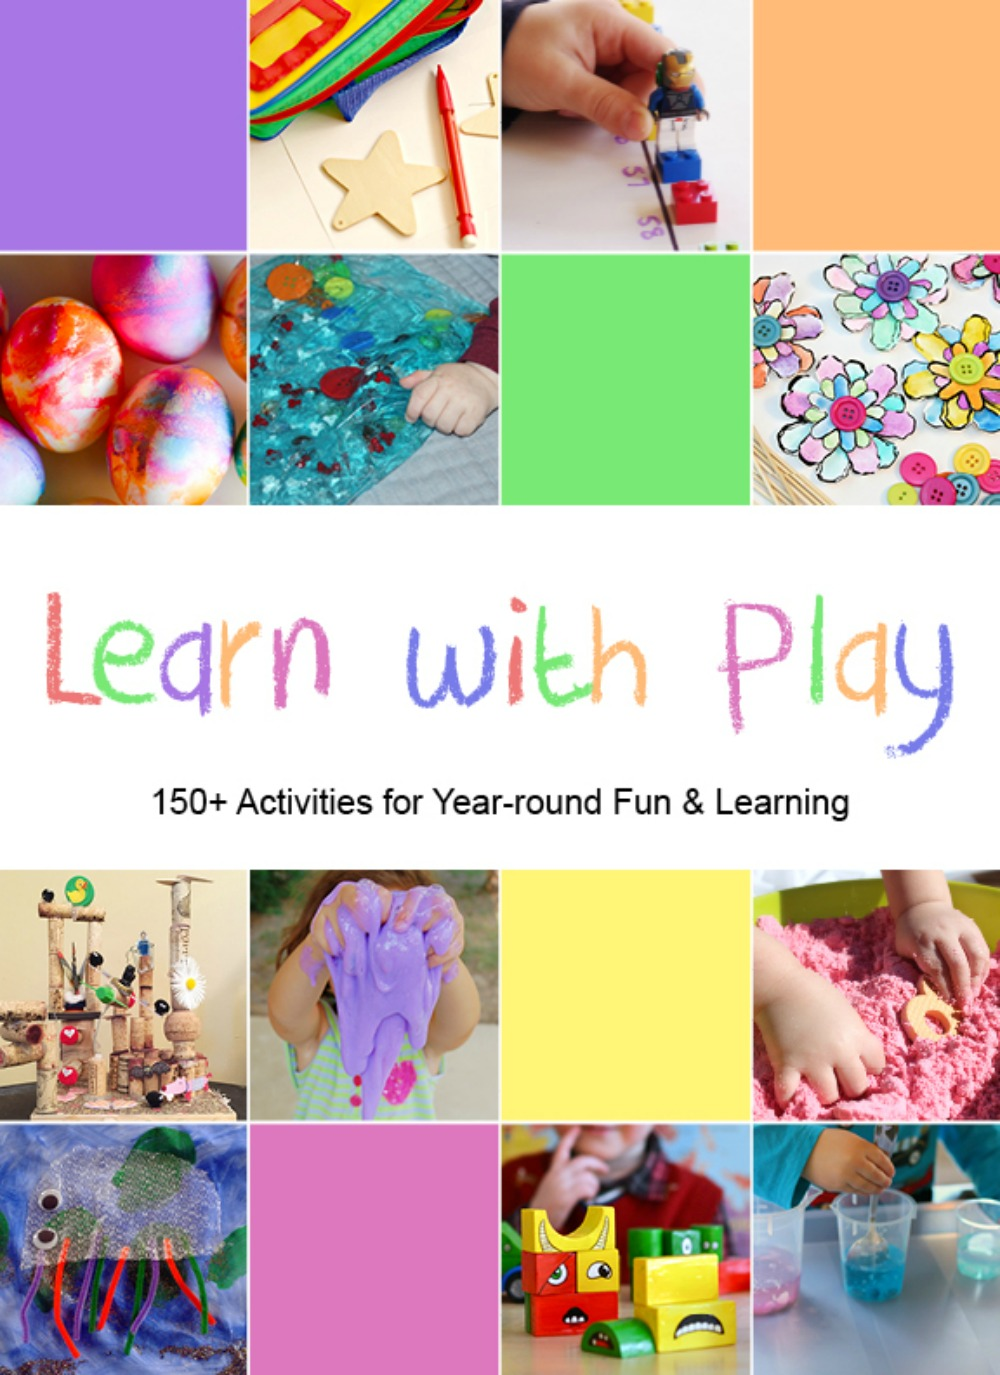 Learn with Play: 150+ Activities for Year-Round Fun and Learning Book Release